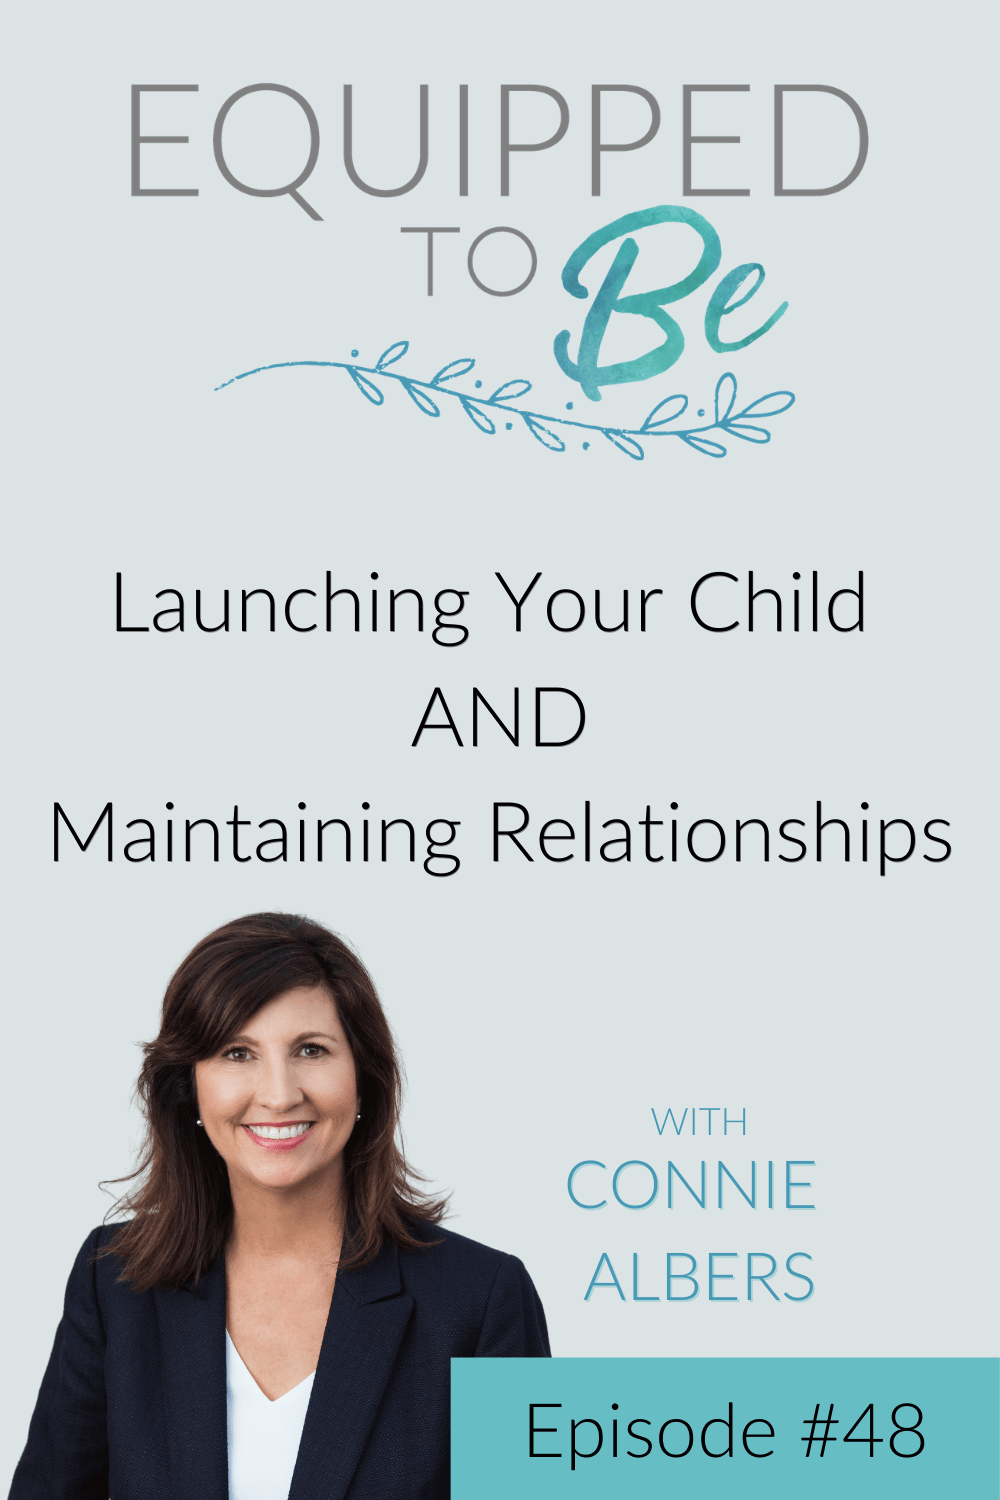 Launching Your Child AND Maintaining Relationships - ETB #48